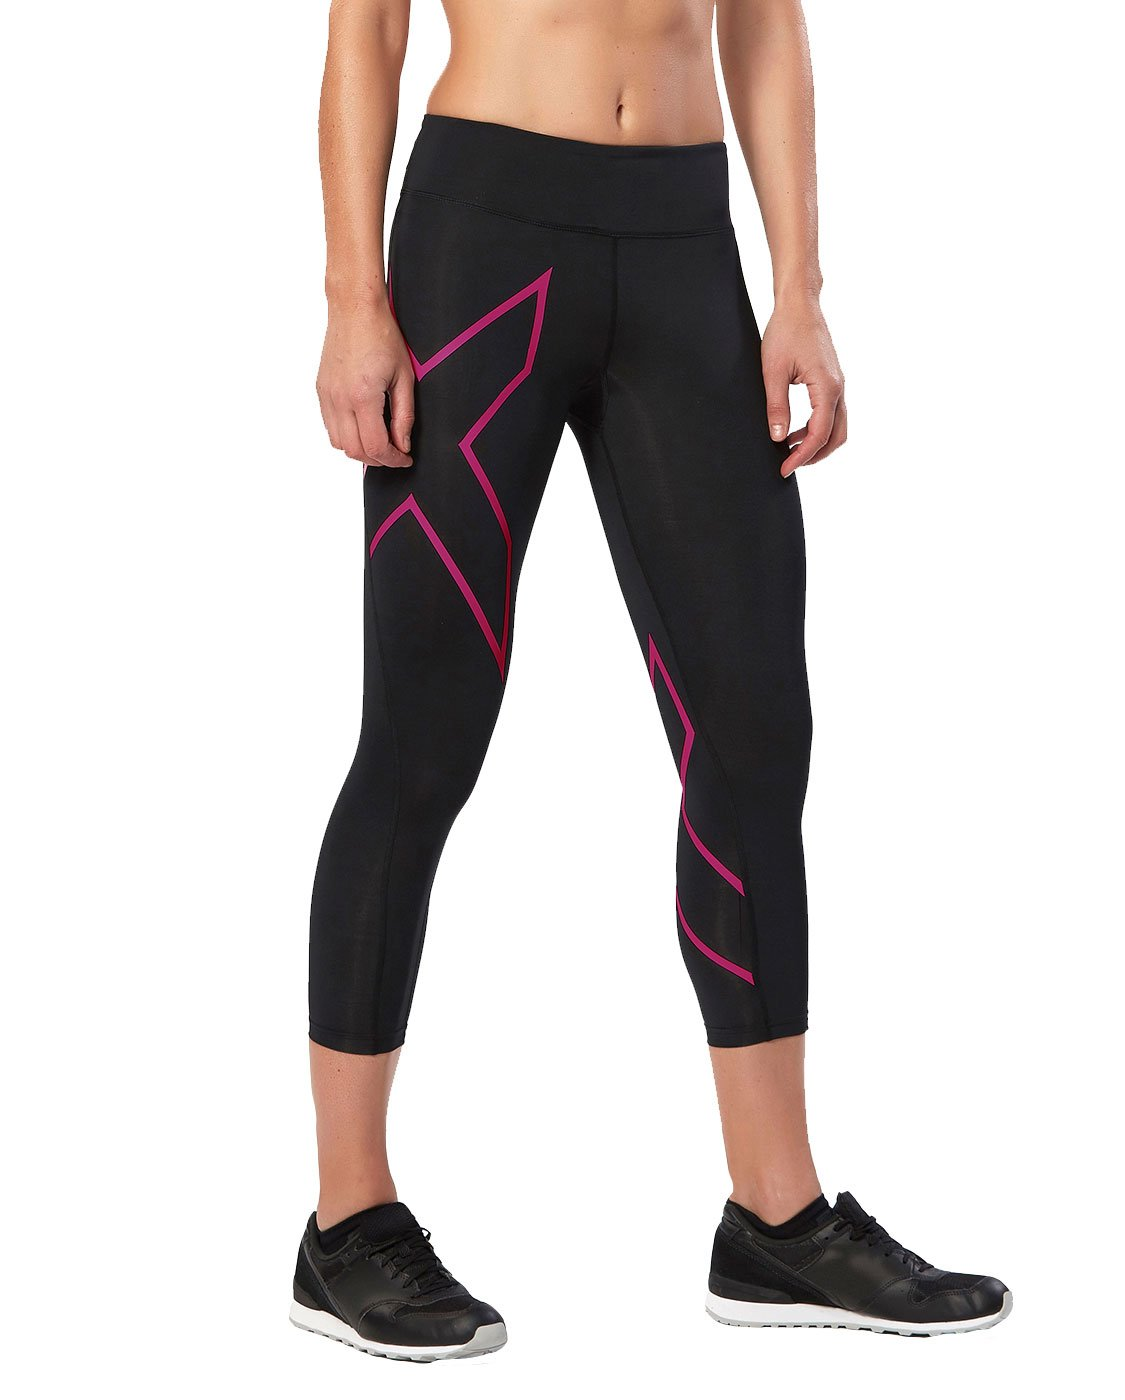 2XU Women's Mid-Rise 7/8 Compression Tights, Black/Cerise Pink, X-Small by 2XU (Image #1)